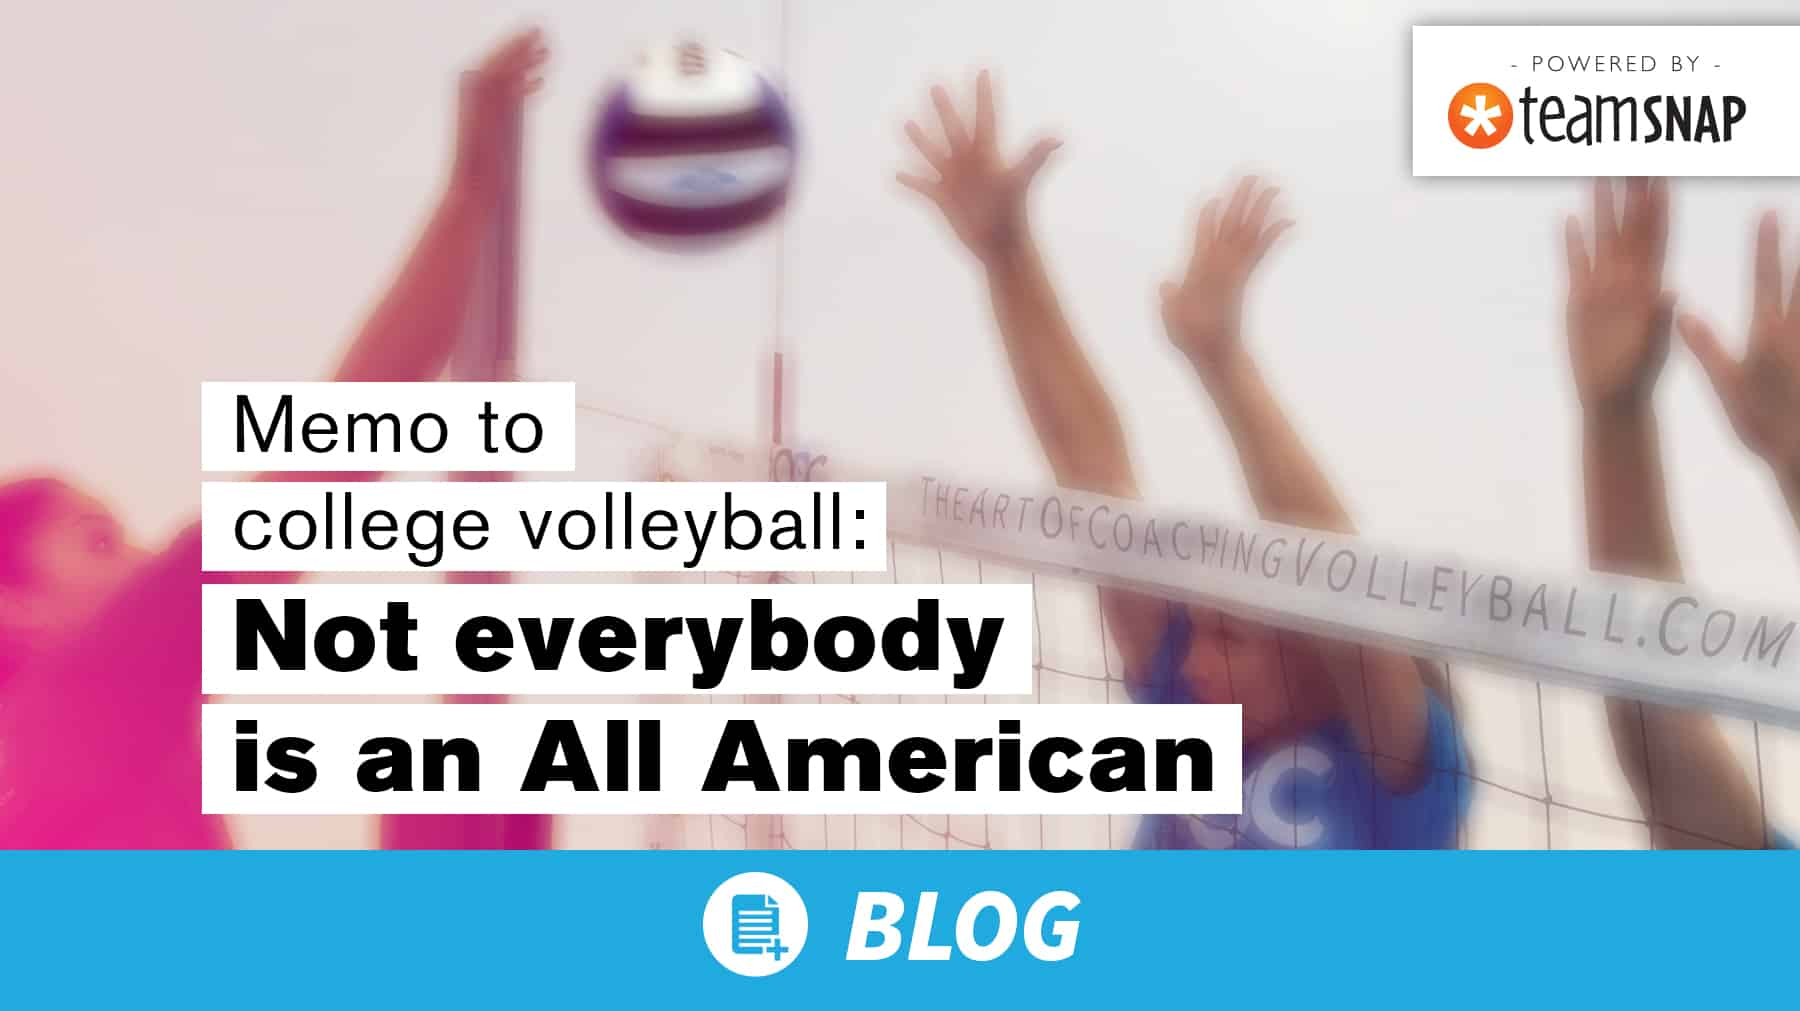 Memo to college volleyball: Not everybody is an All American